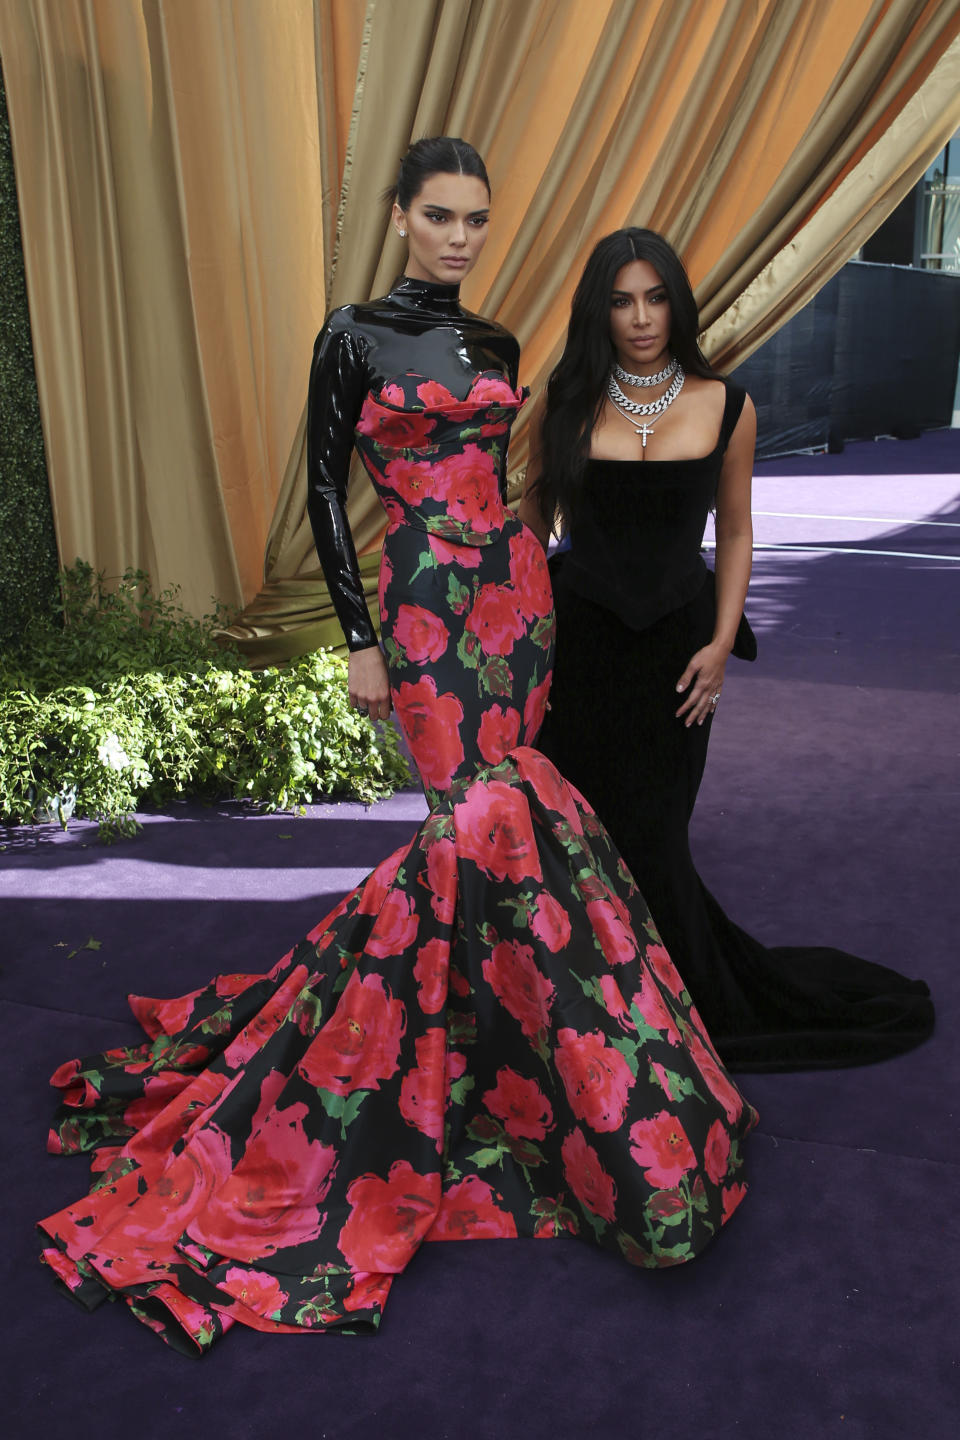 Kendall Jenner and Kim Kardashian arrive at the 71st Primetime Emmy Awards on Sunday, Sept. 22, 2019, at the Microsoft Theater in Los Angeles. (Photo by J.Emilio Flores/Invision for FIJI/AP Images)